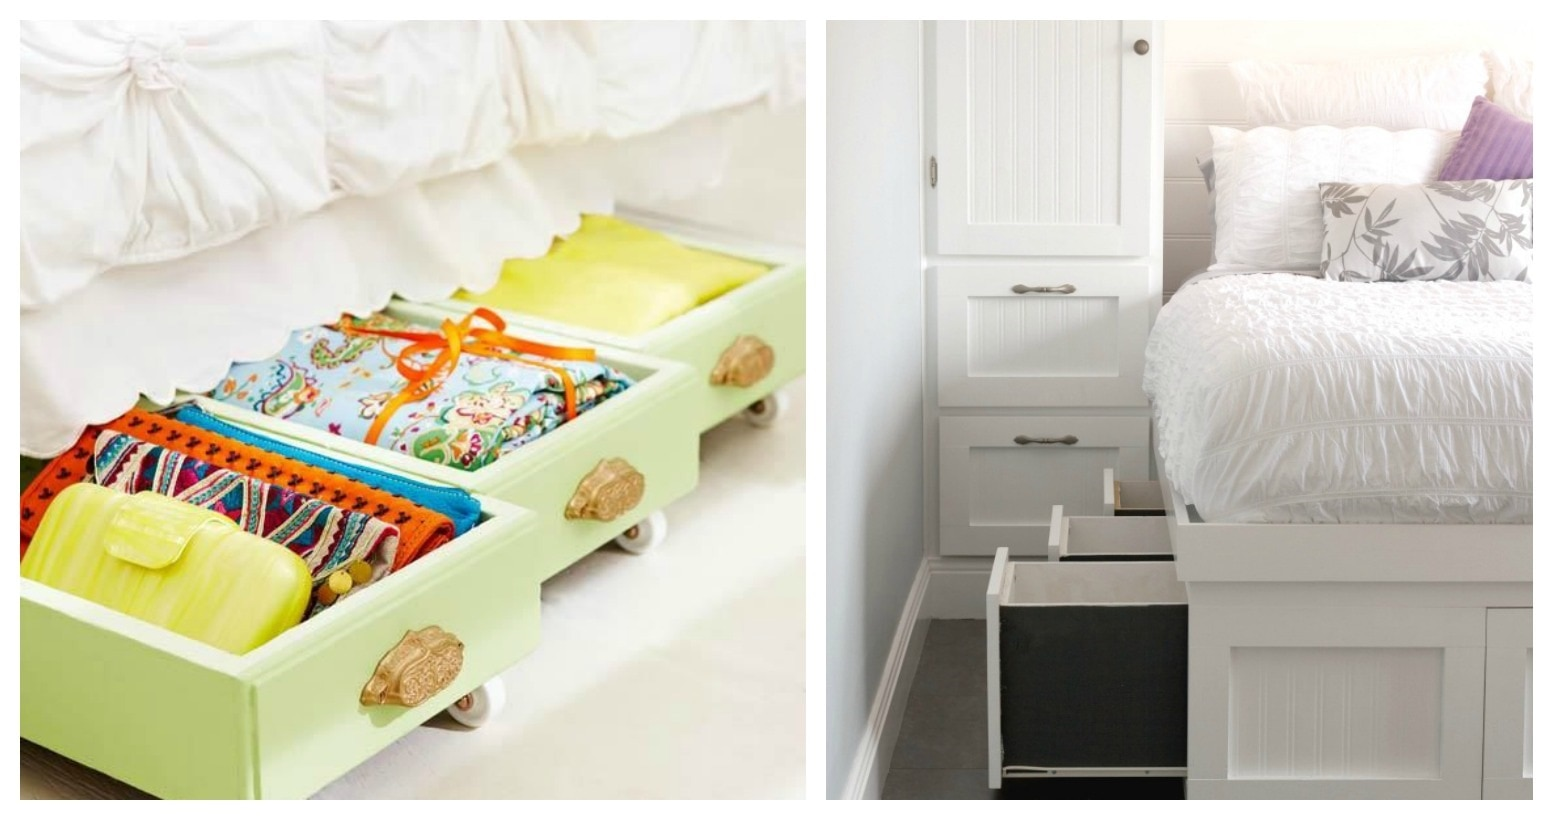 How to Make the Most of Small Bedroom Storage | thegoodstuff